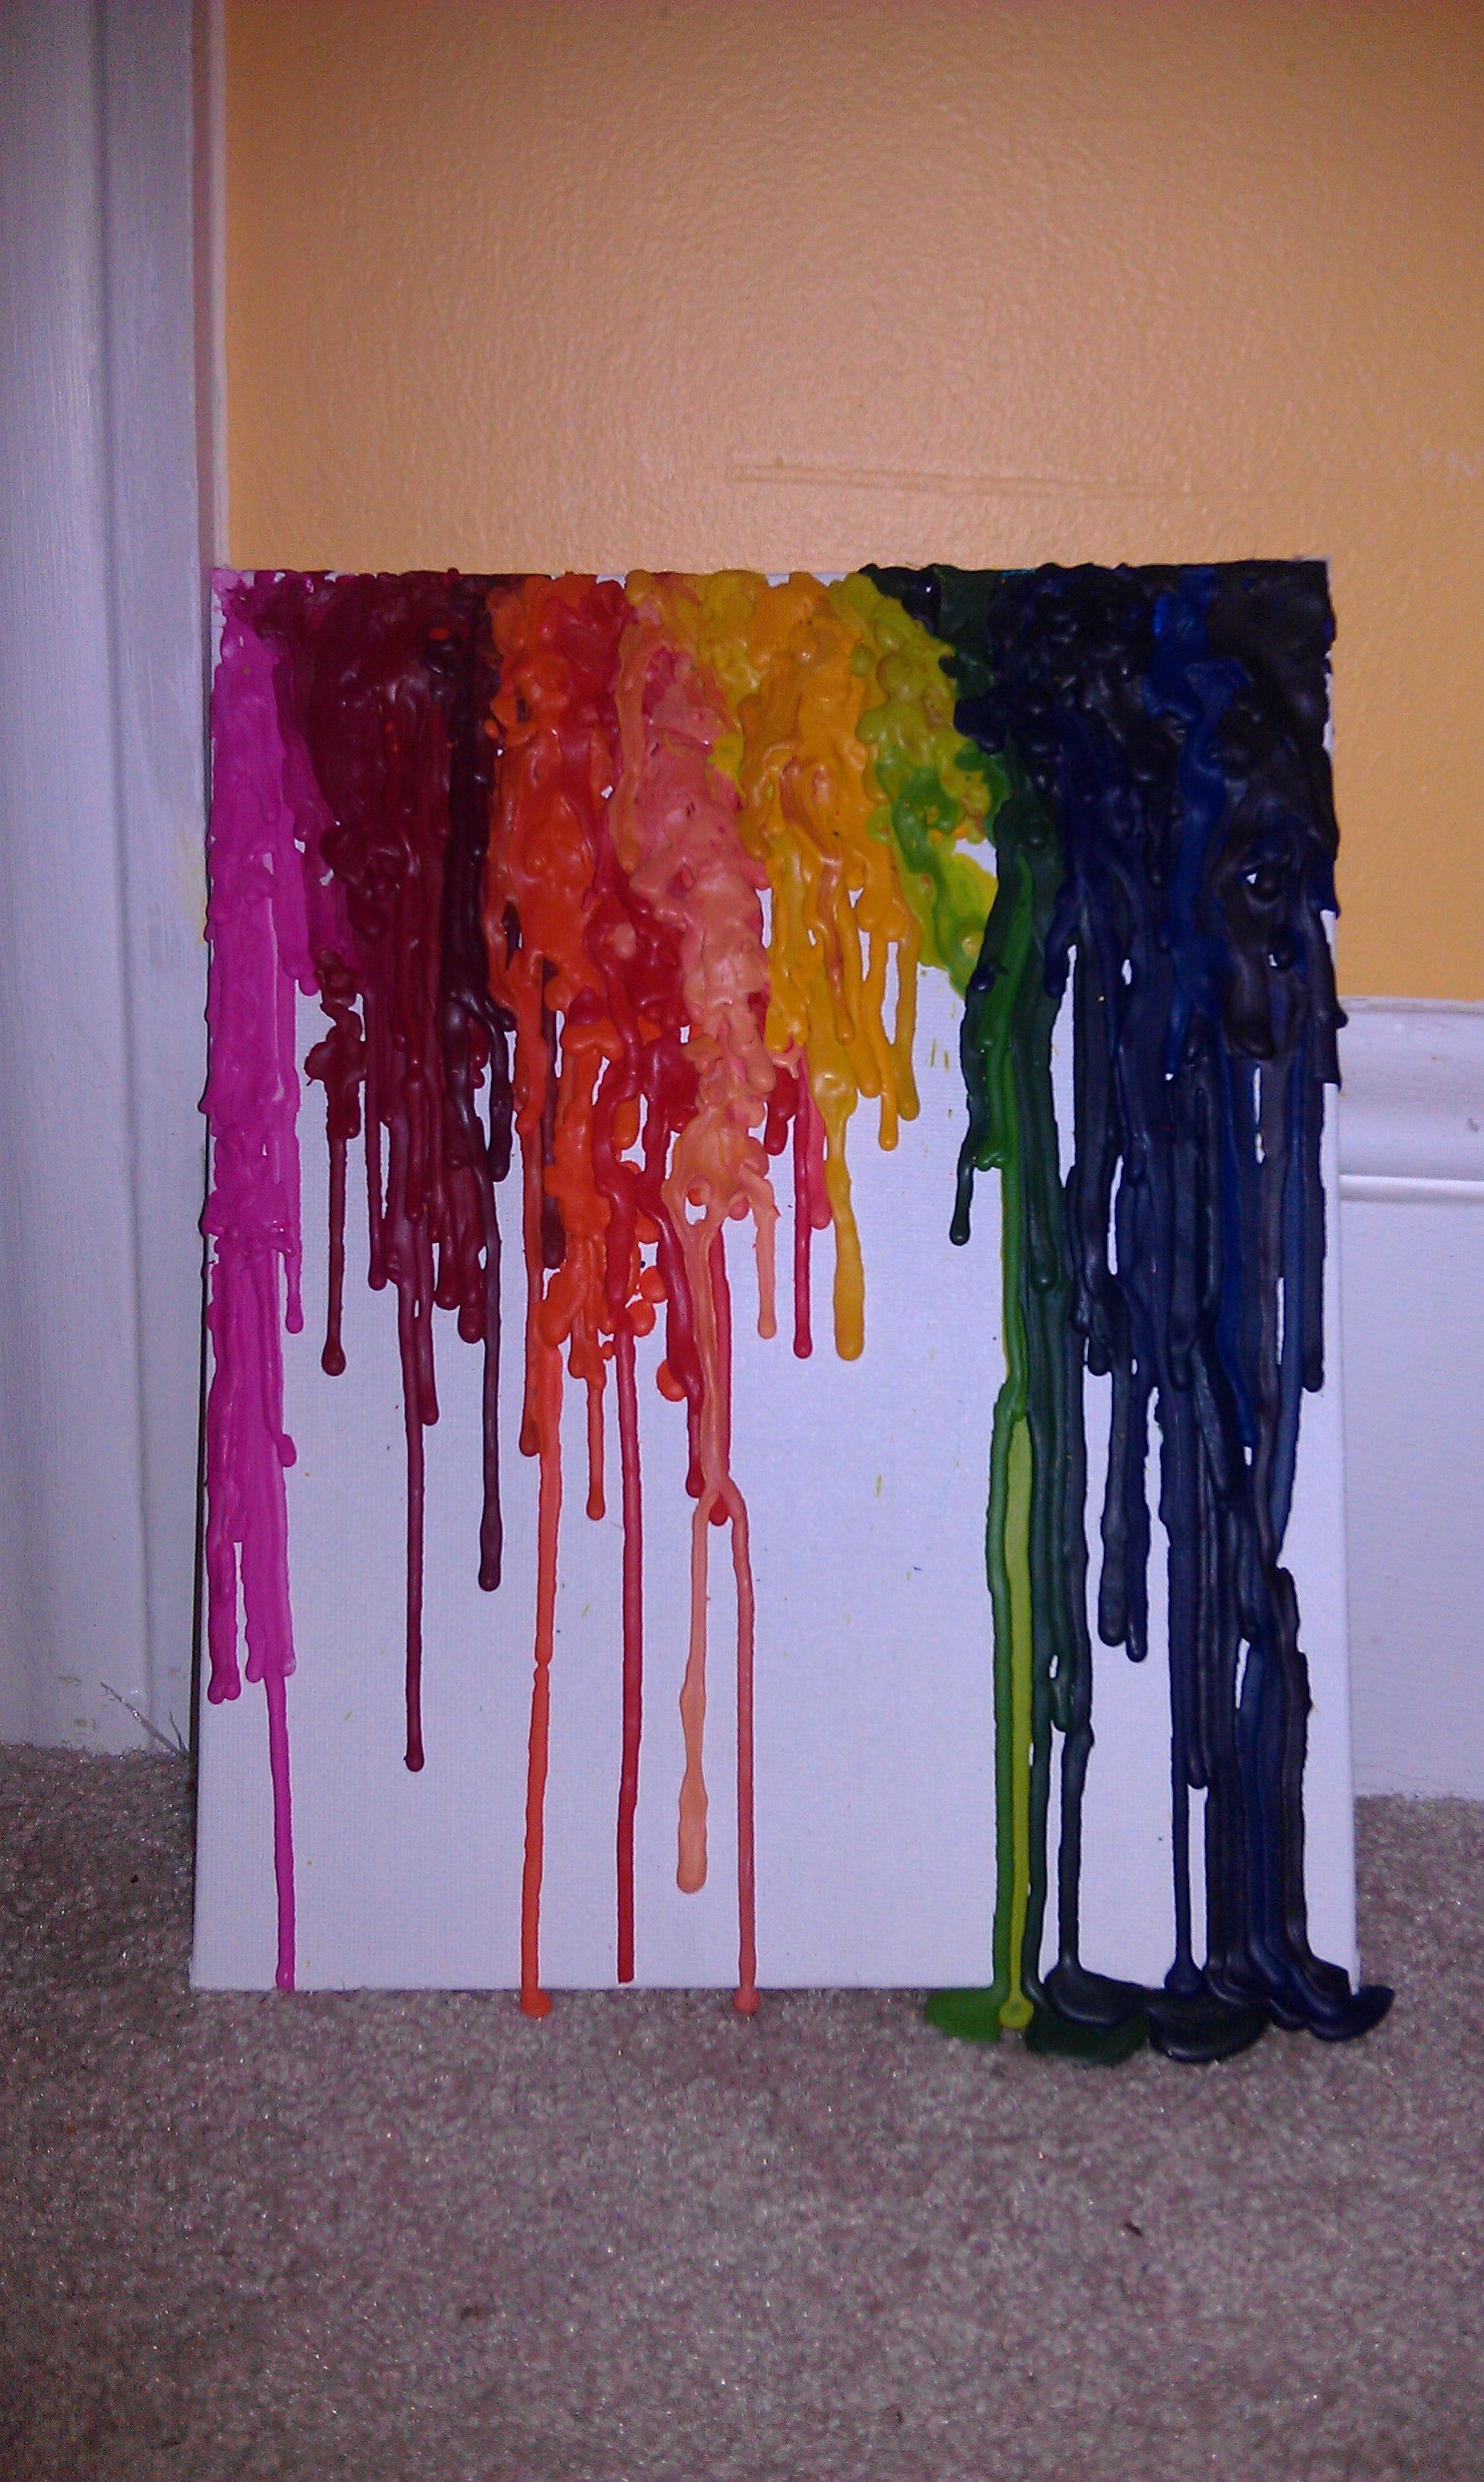 Crayon melted to canvas board... (It is dry and not melted